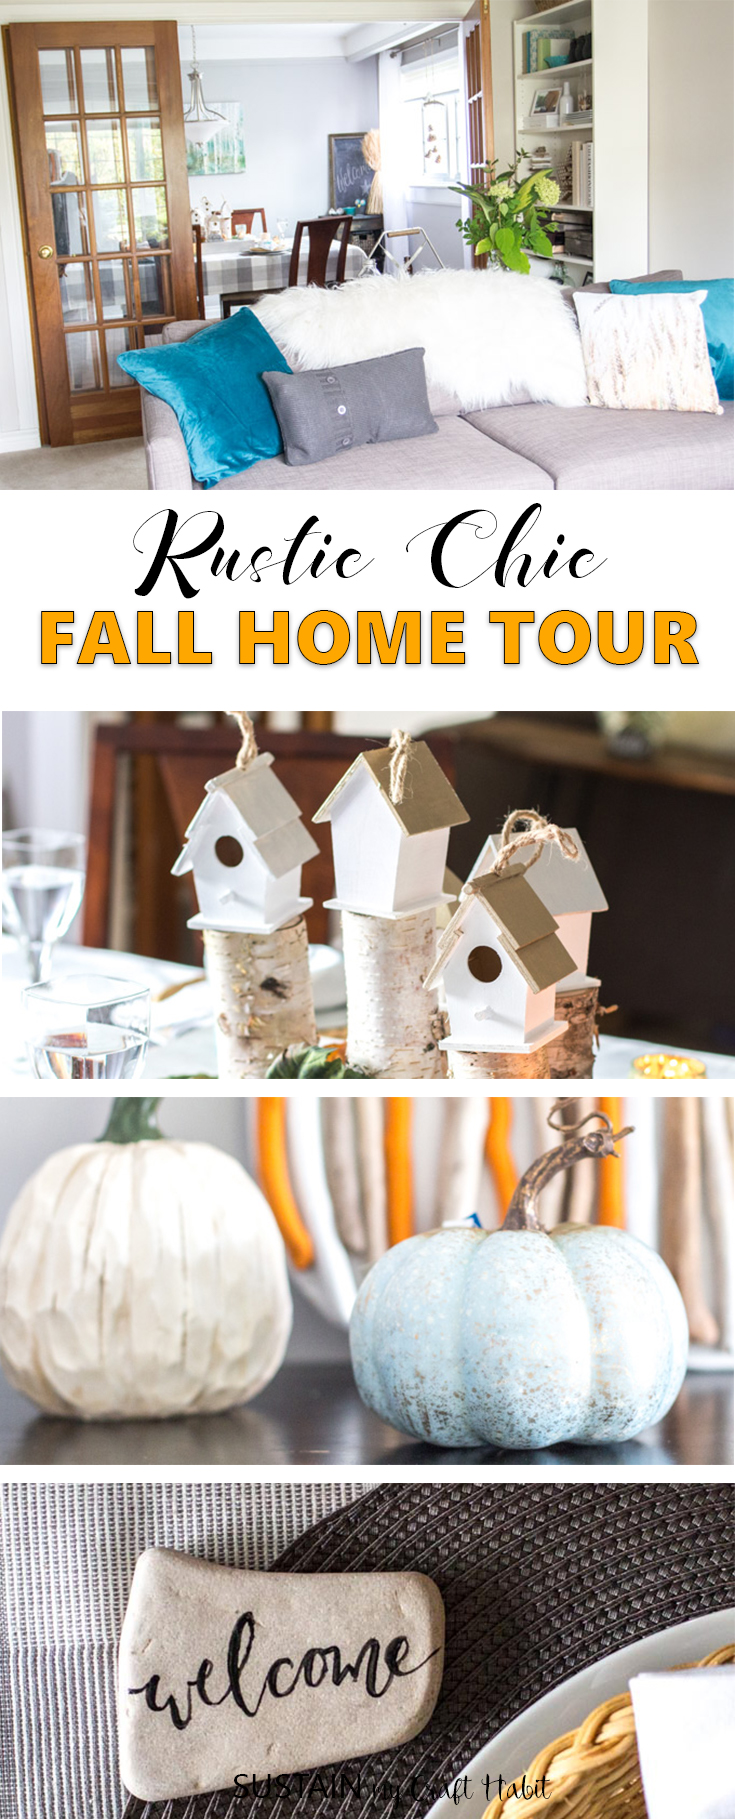 Gorgeous rustic chic fall home tour \ Fall decorating ideas with natural materials \ Teal and neutral fall decor \ Canadian bloggers fall home tour \ DIY autumn decorating ideas